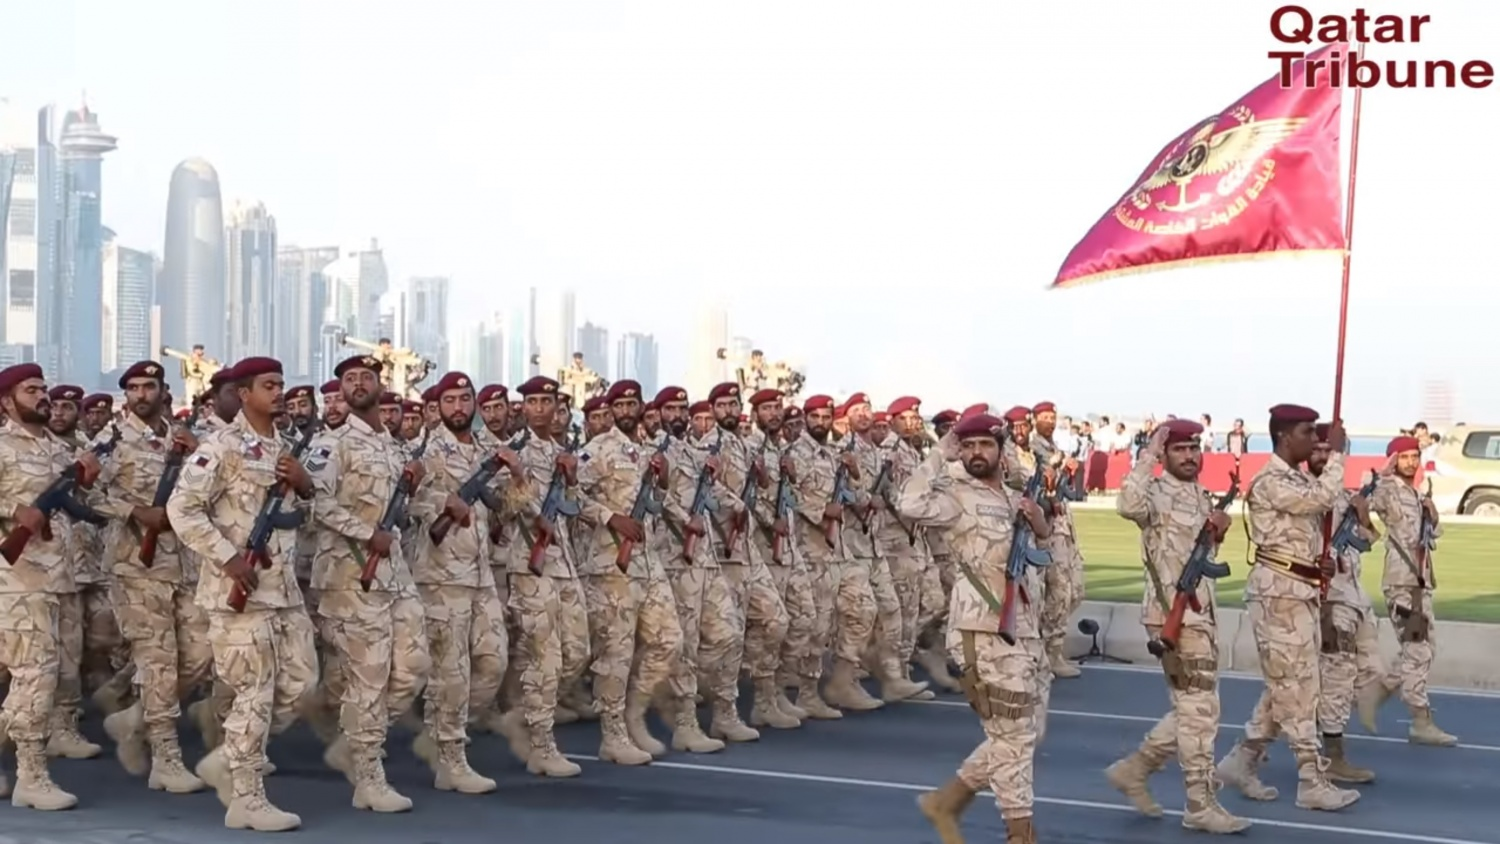 Photo credit Qatar Tribune https://www.youtube.com/watch?v=ckTt-gItdm4